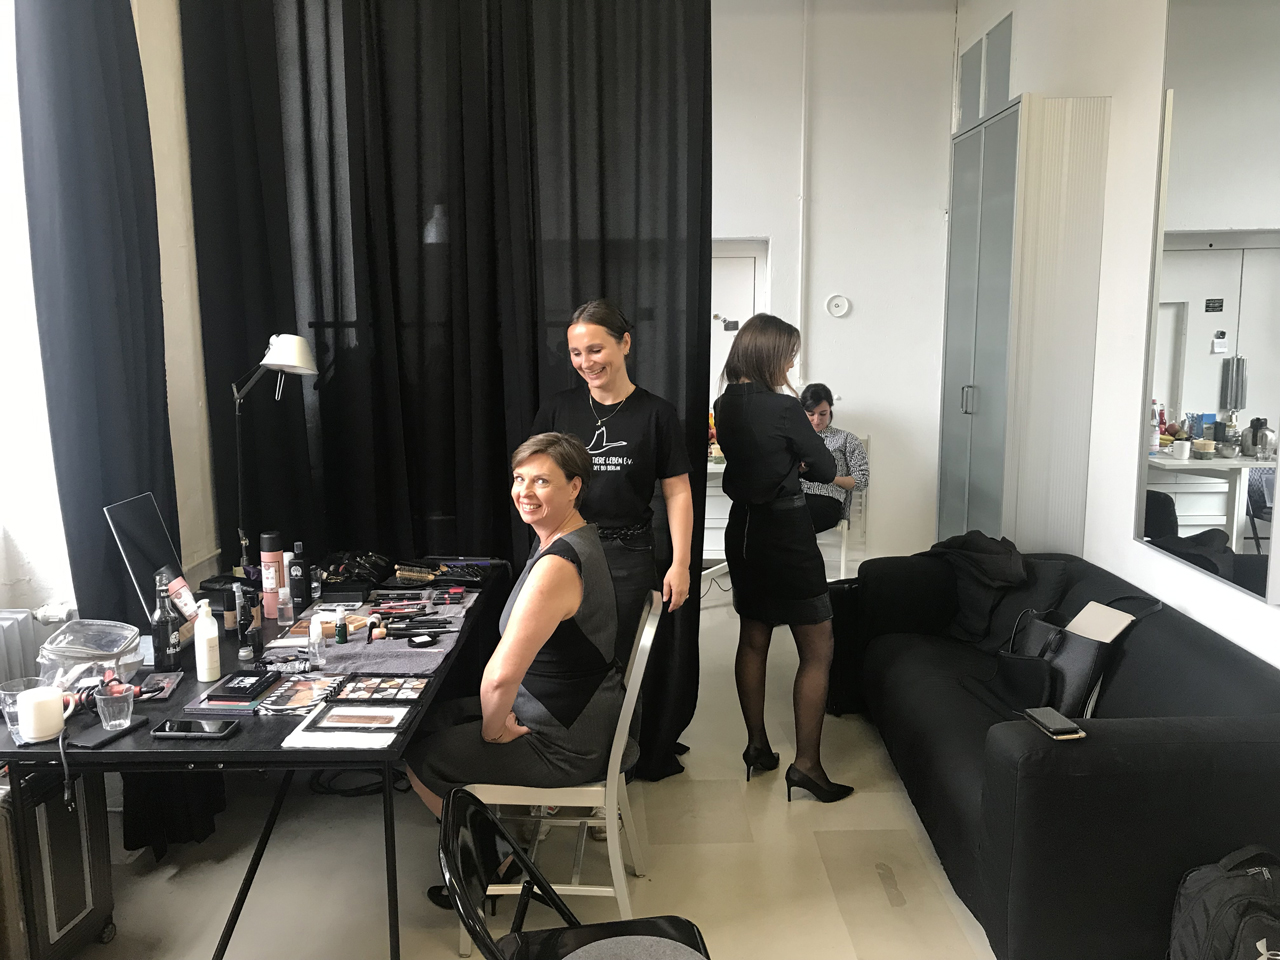 In makeup before the new brand shooting.